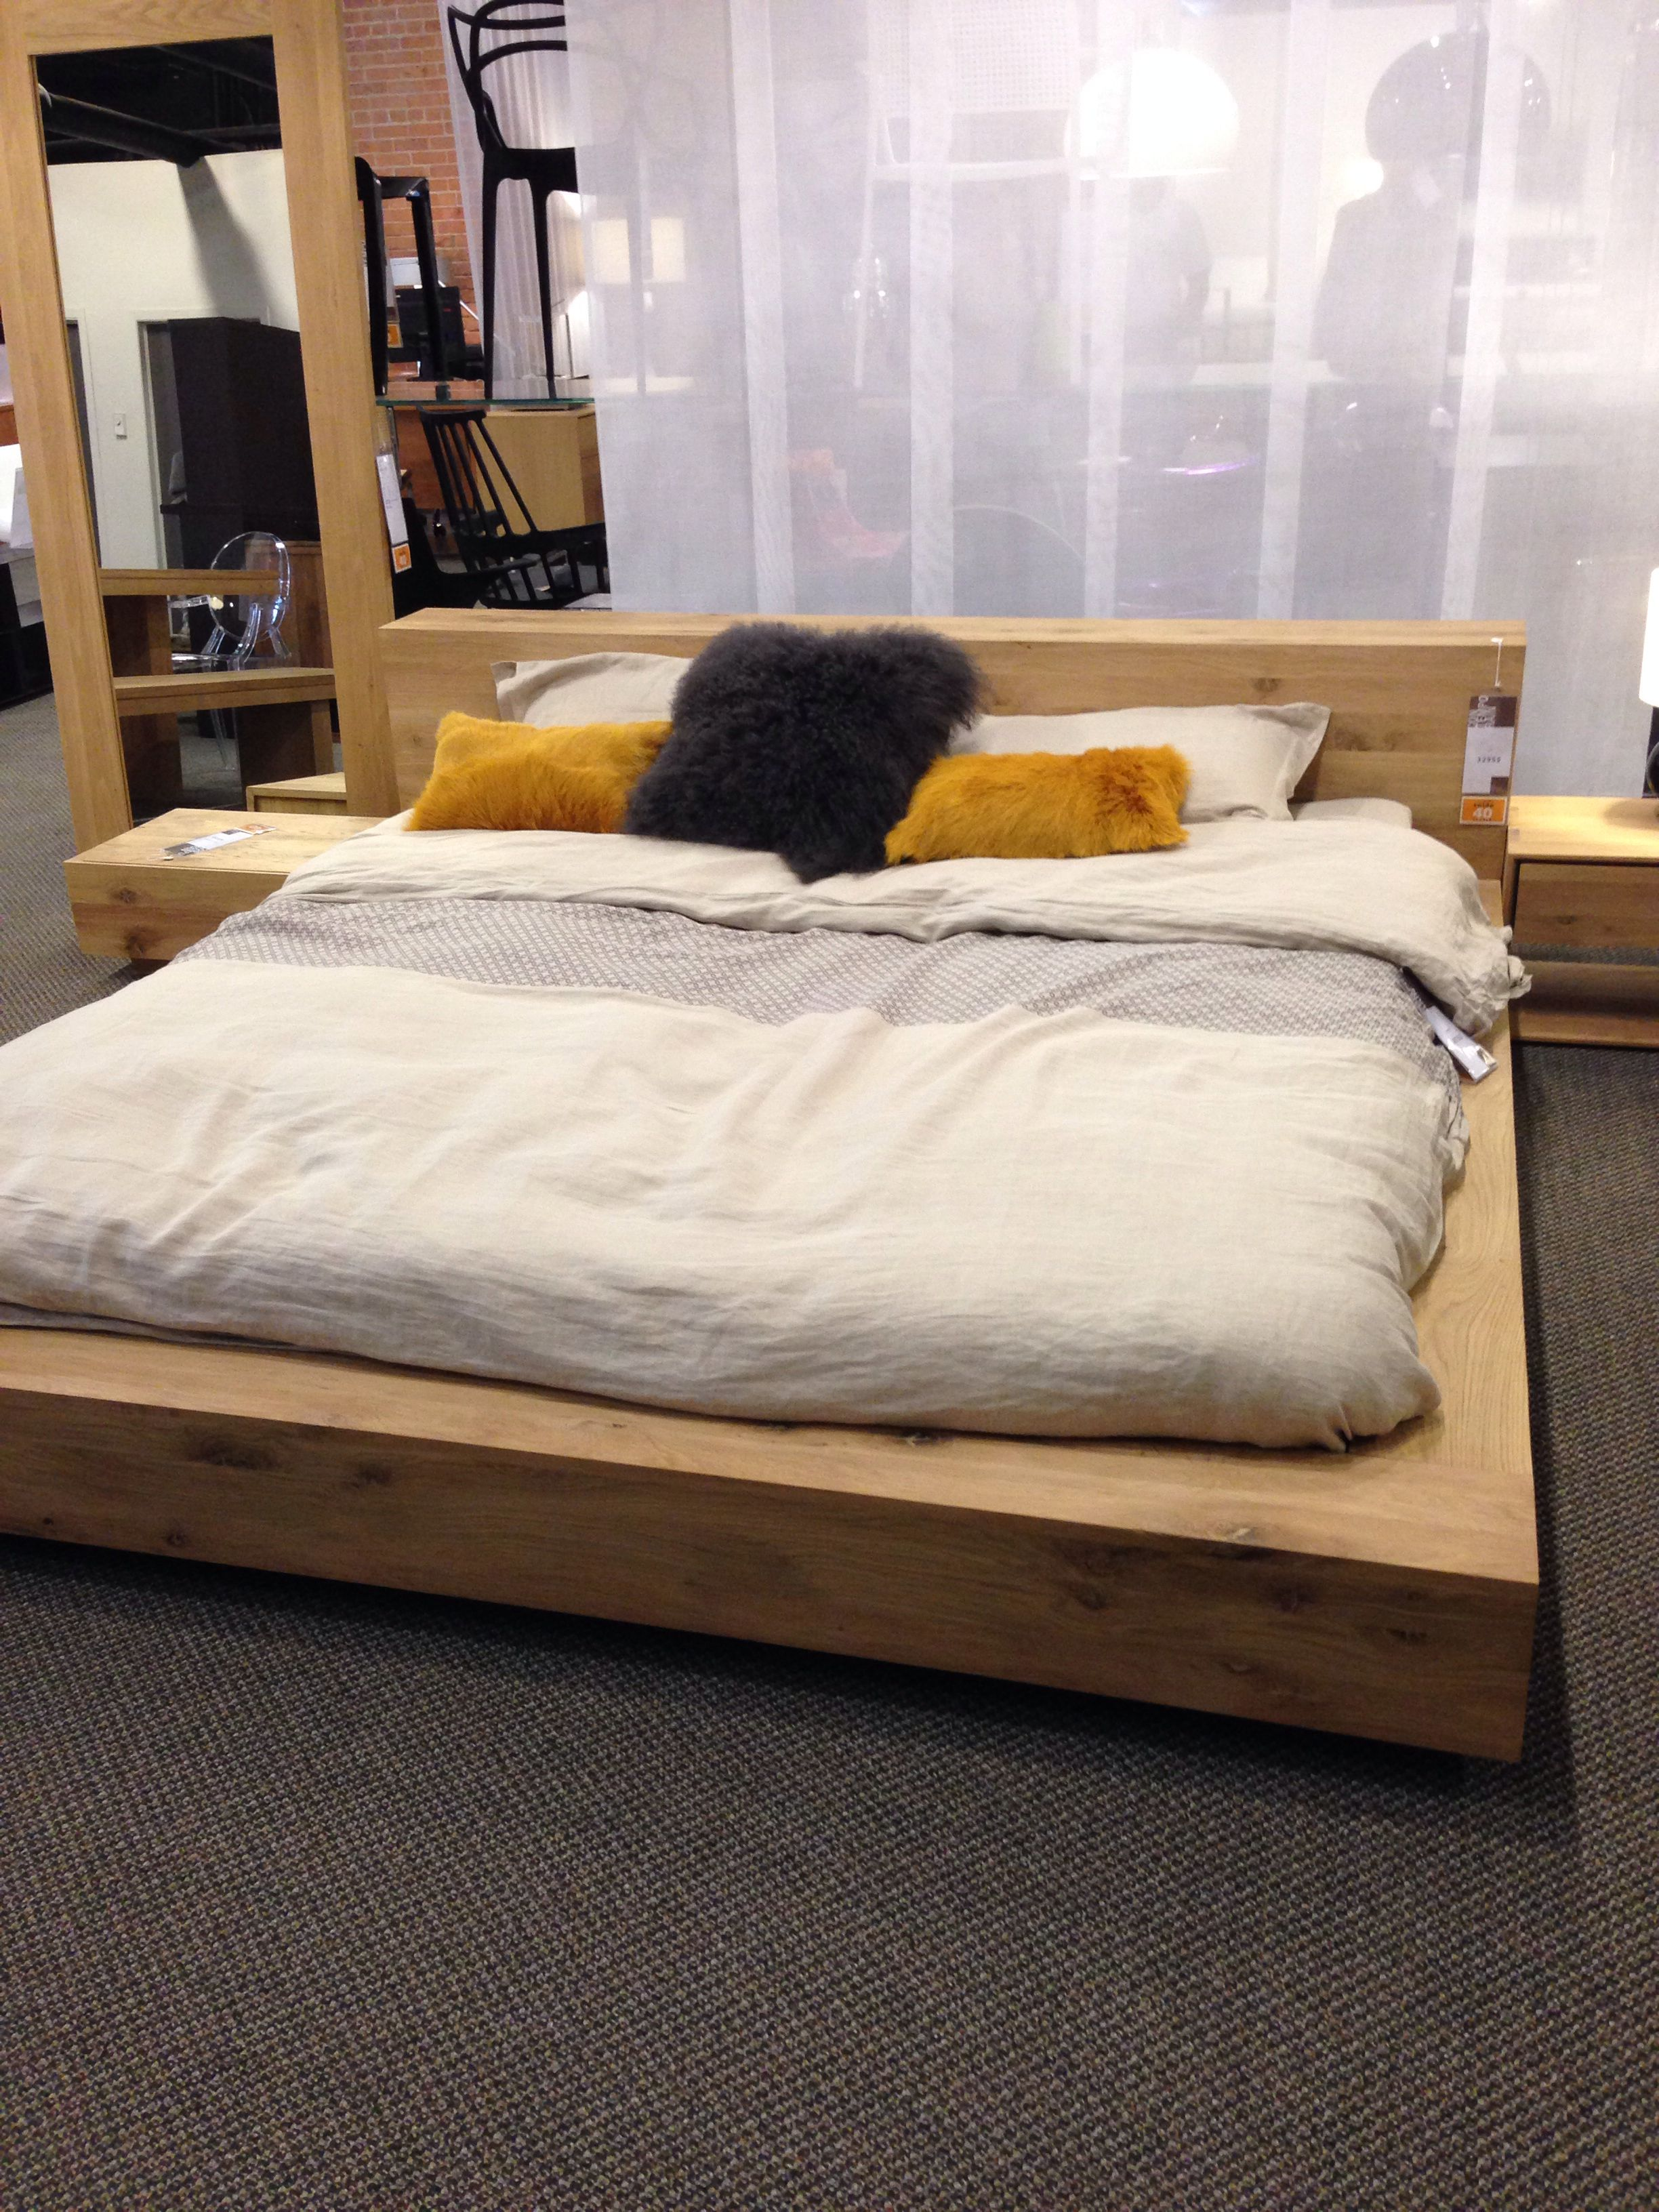 Madra Bed Ethnicraft : Ethnicraft madras bed la galerie du meuble odys likes